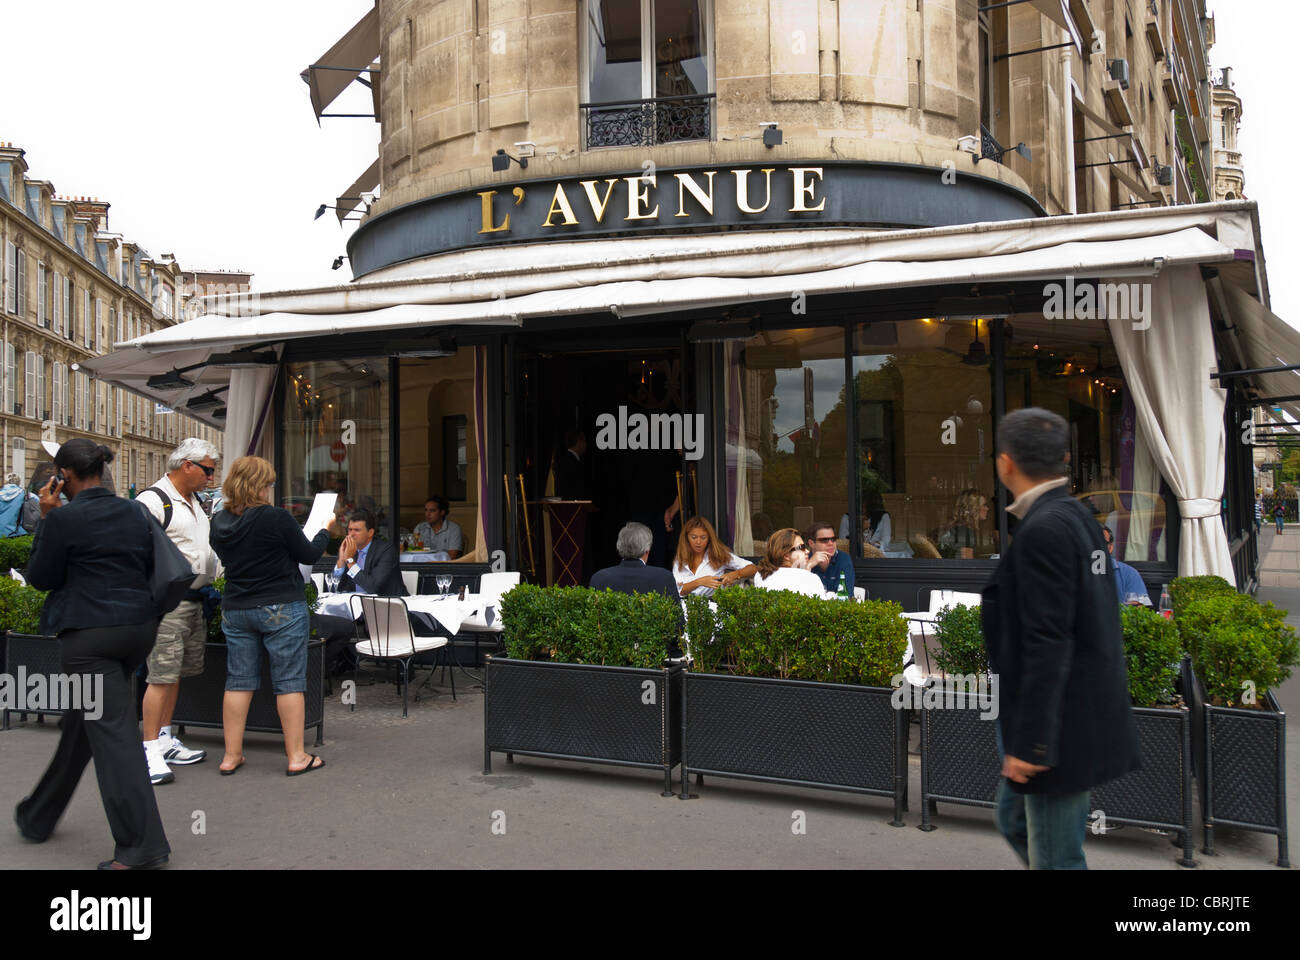 L Avenue Paris Fotos E Imagenes De Stock Alamy